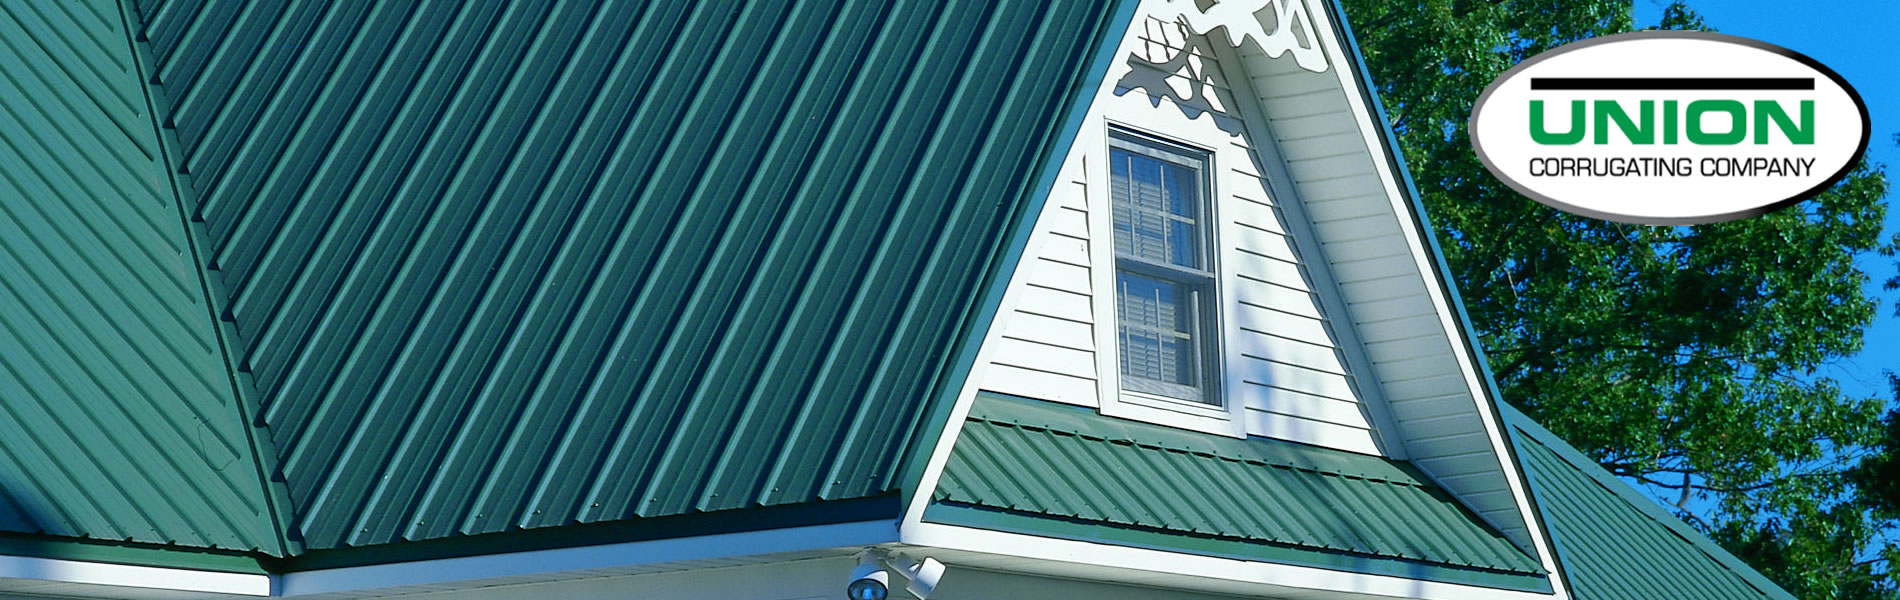 Crown Roofing Images